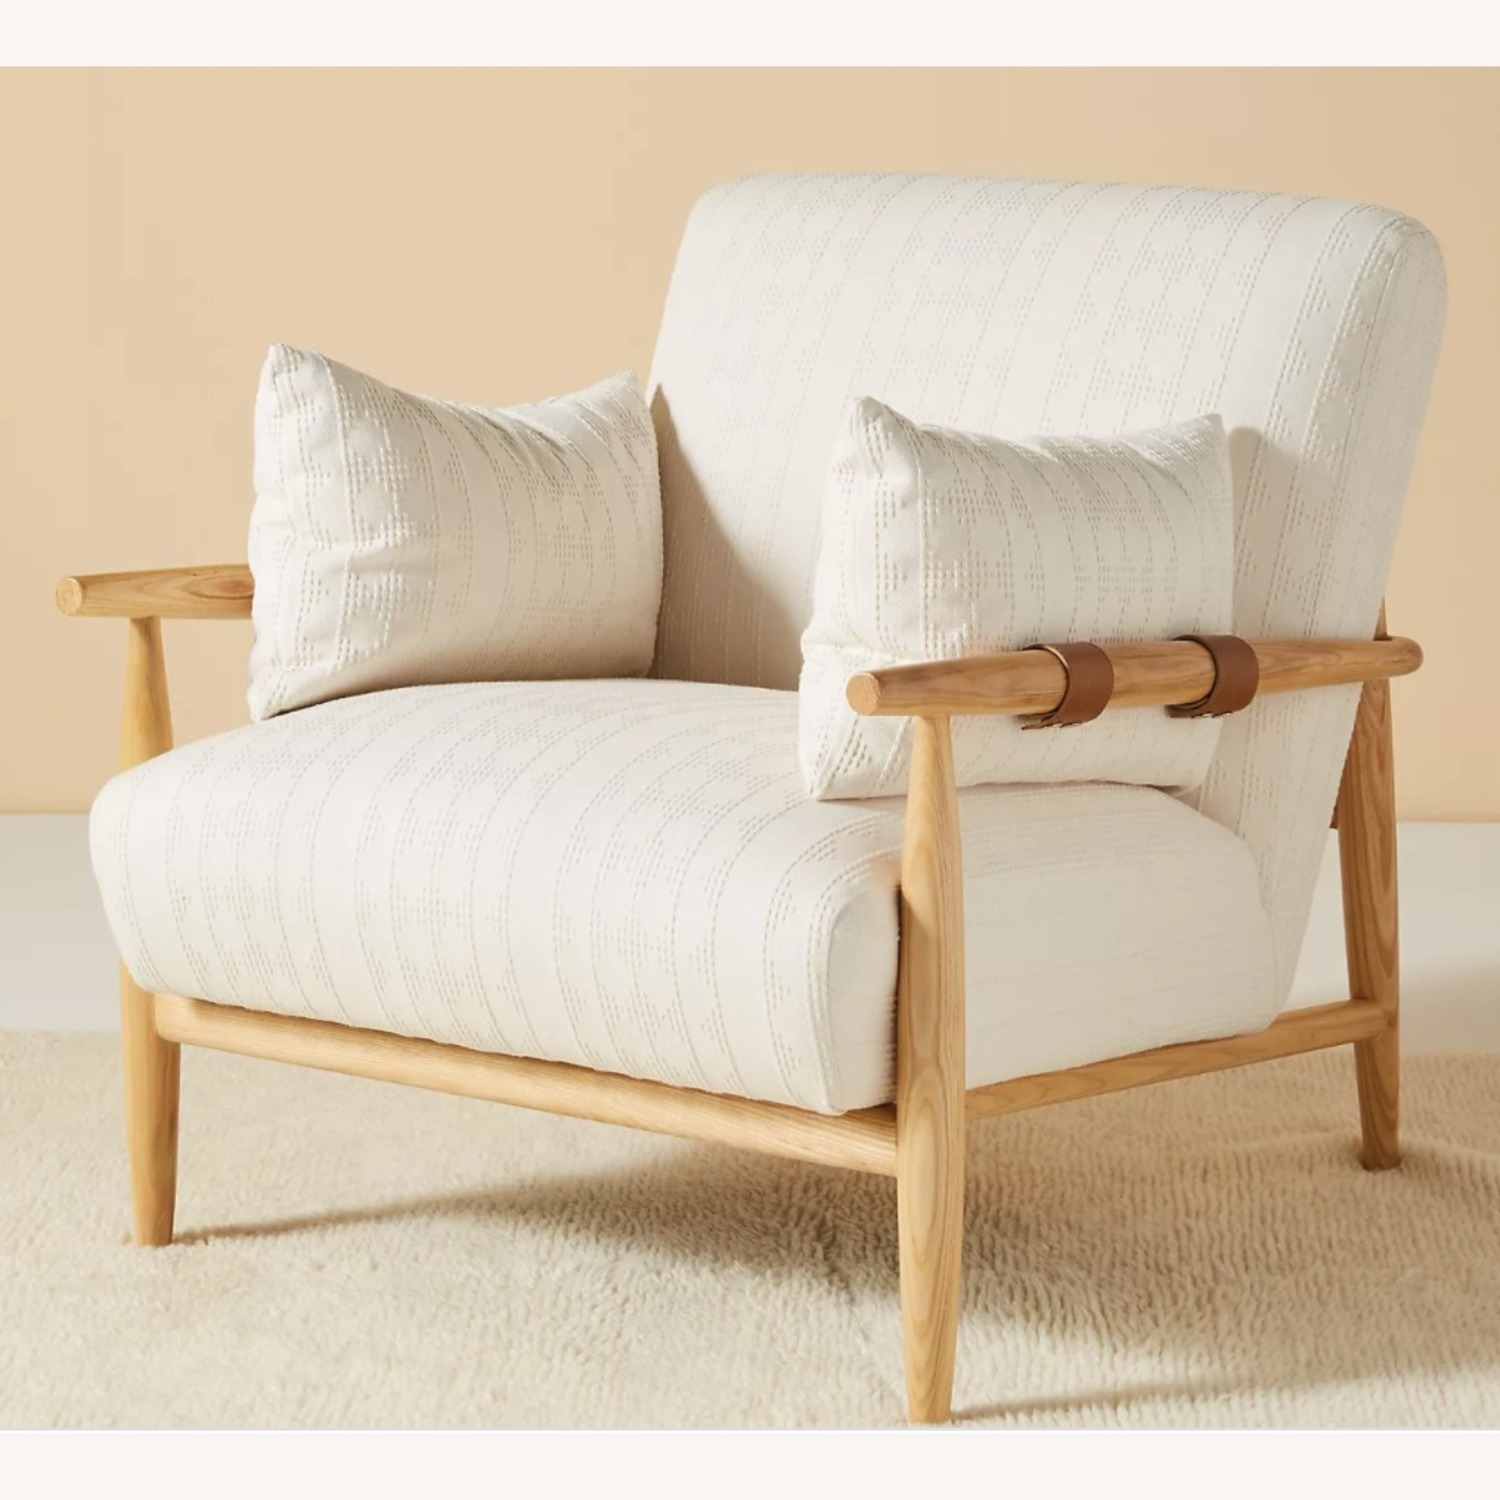 Anthropologie Kershaw Accent Chairs - image-1